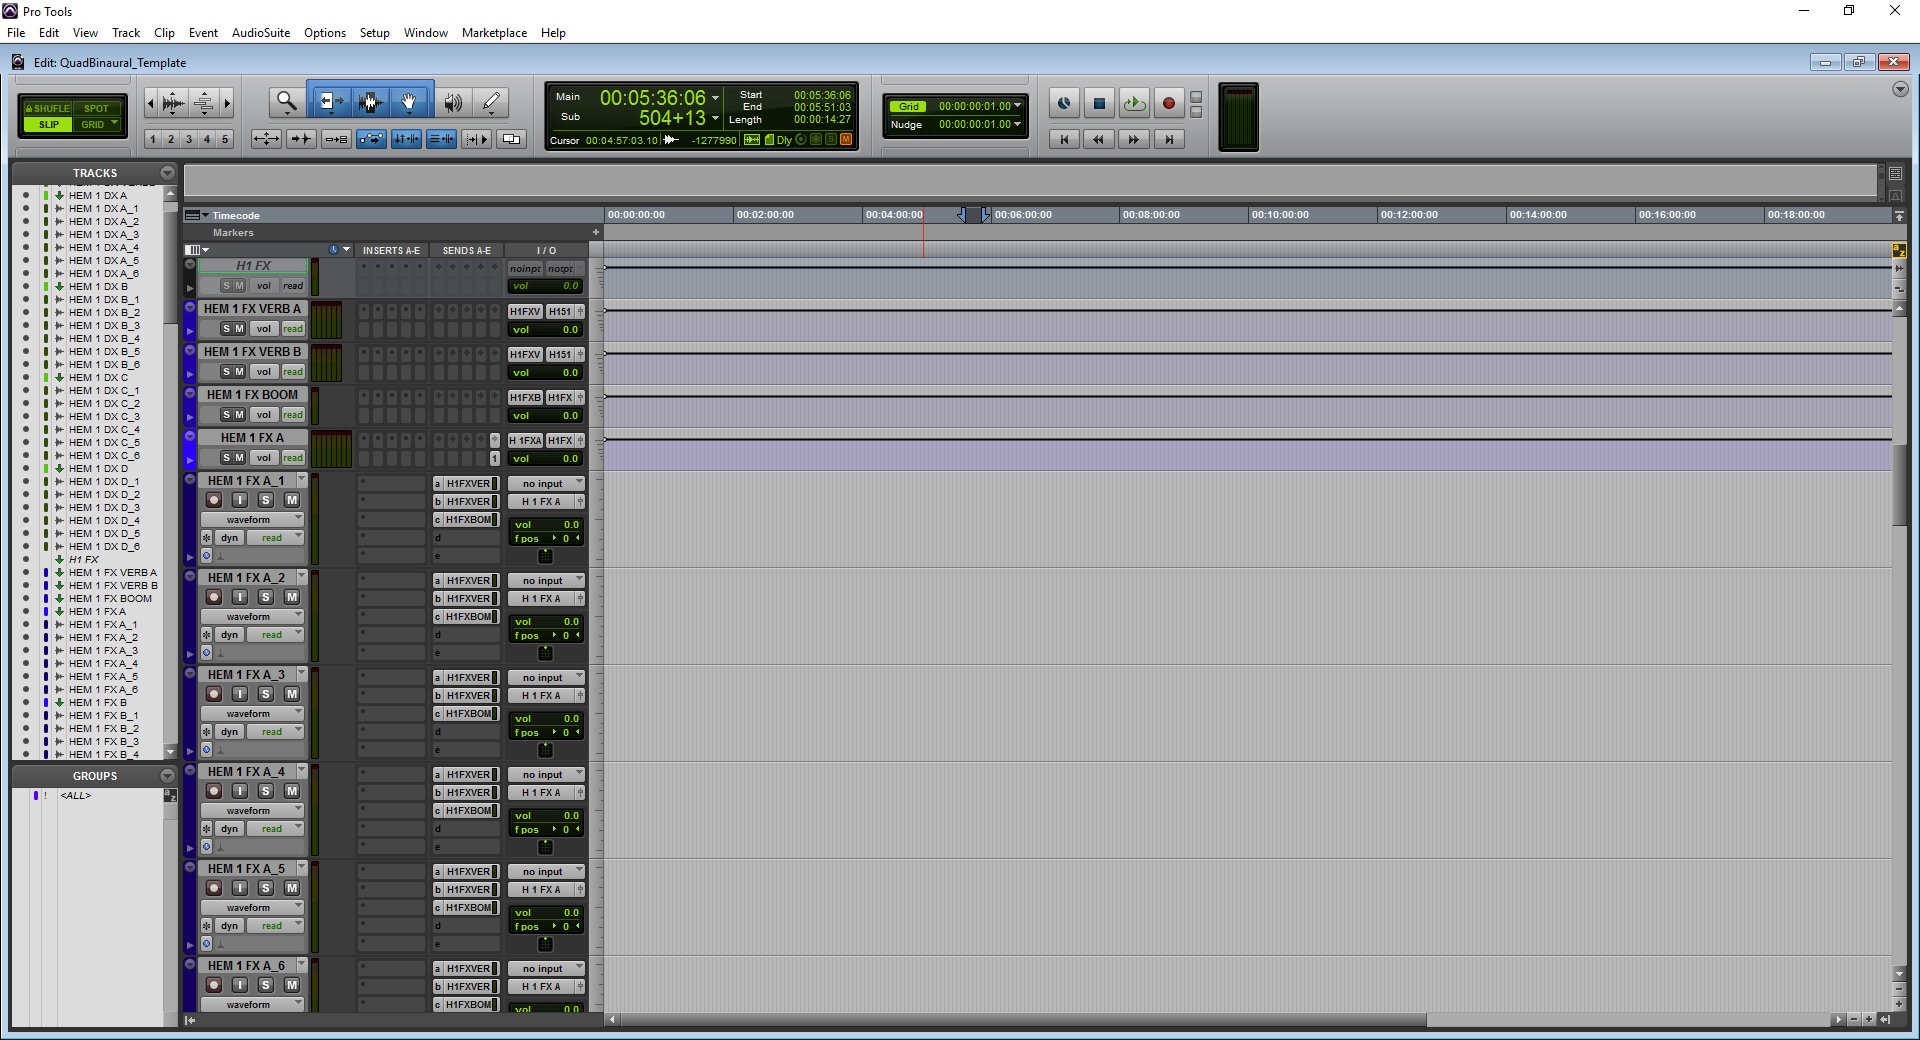 A screenshot of Pro Tools showing the FX predub